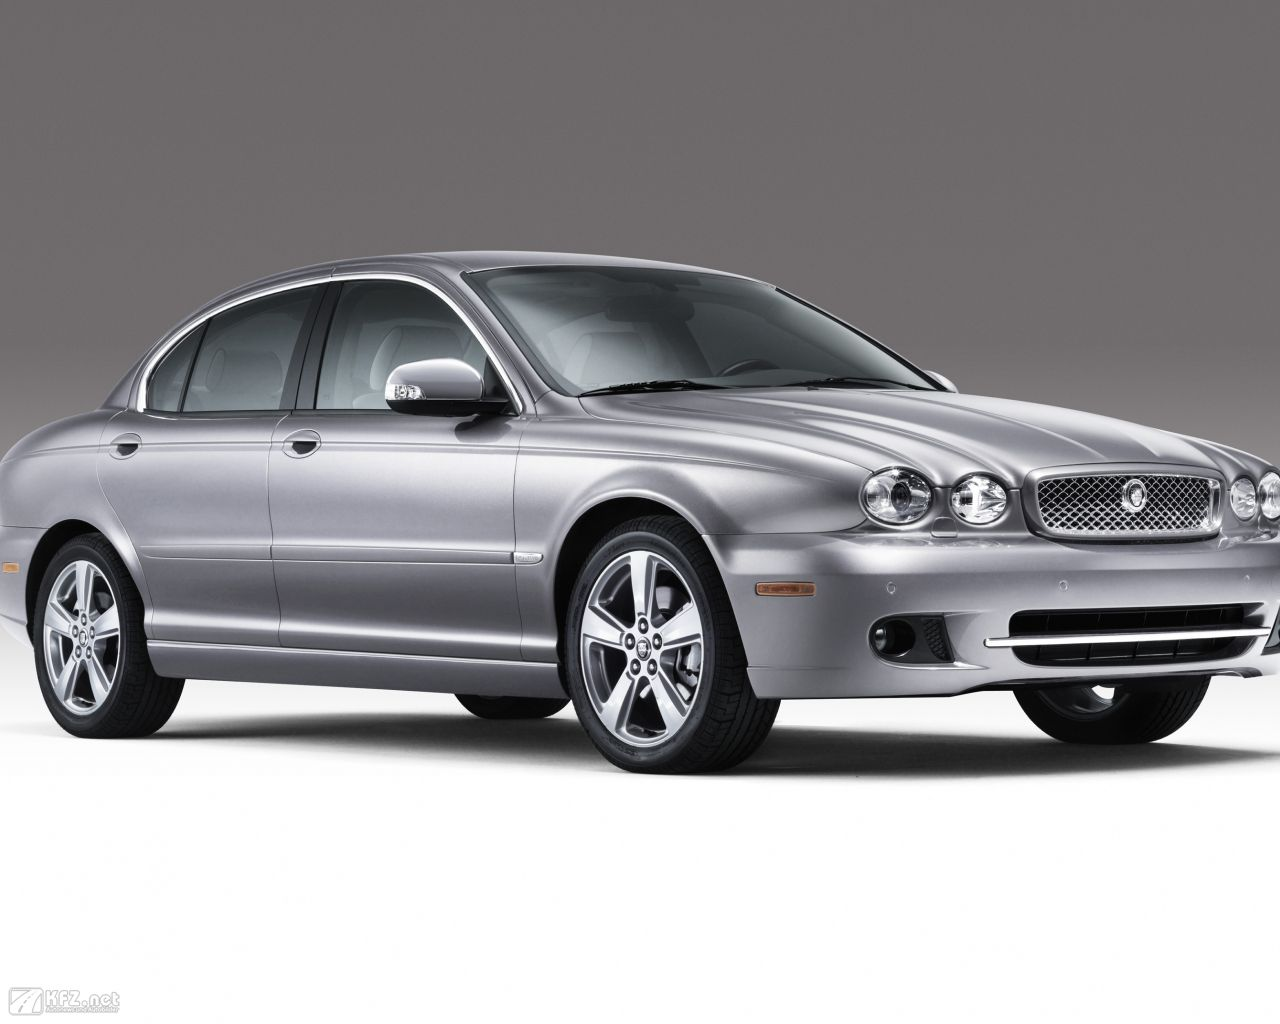 jaguar-x-type-1280x1024-18